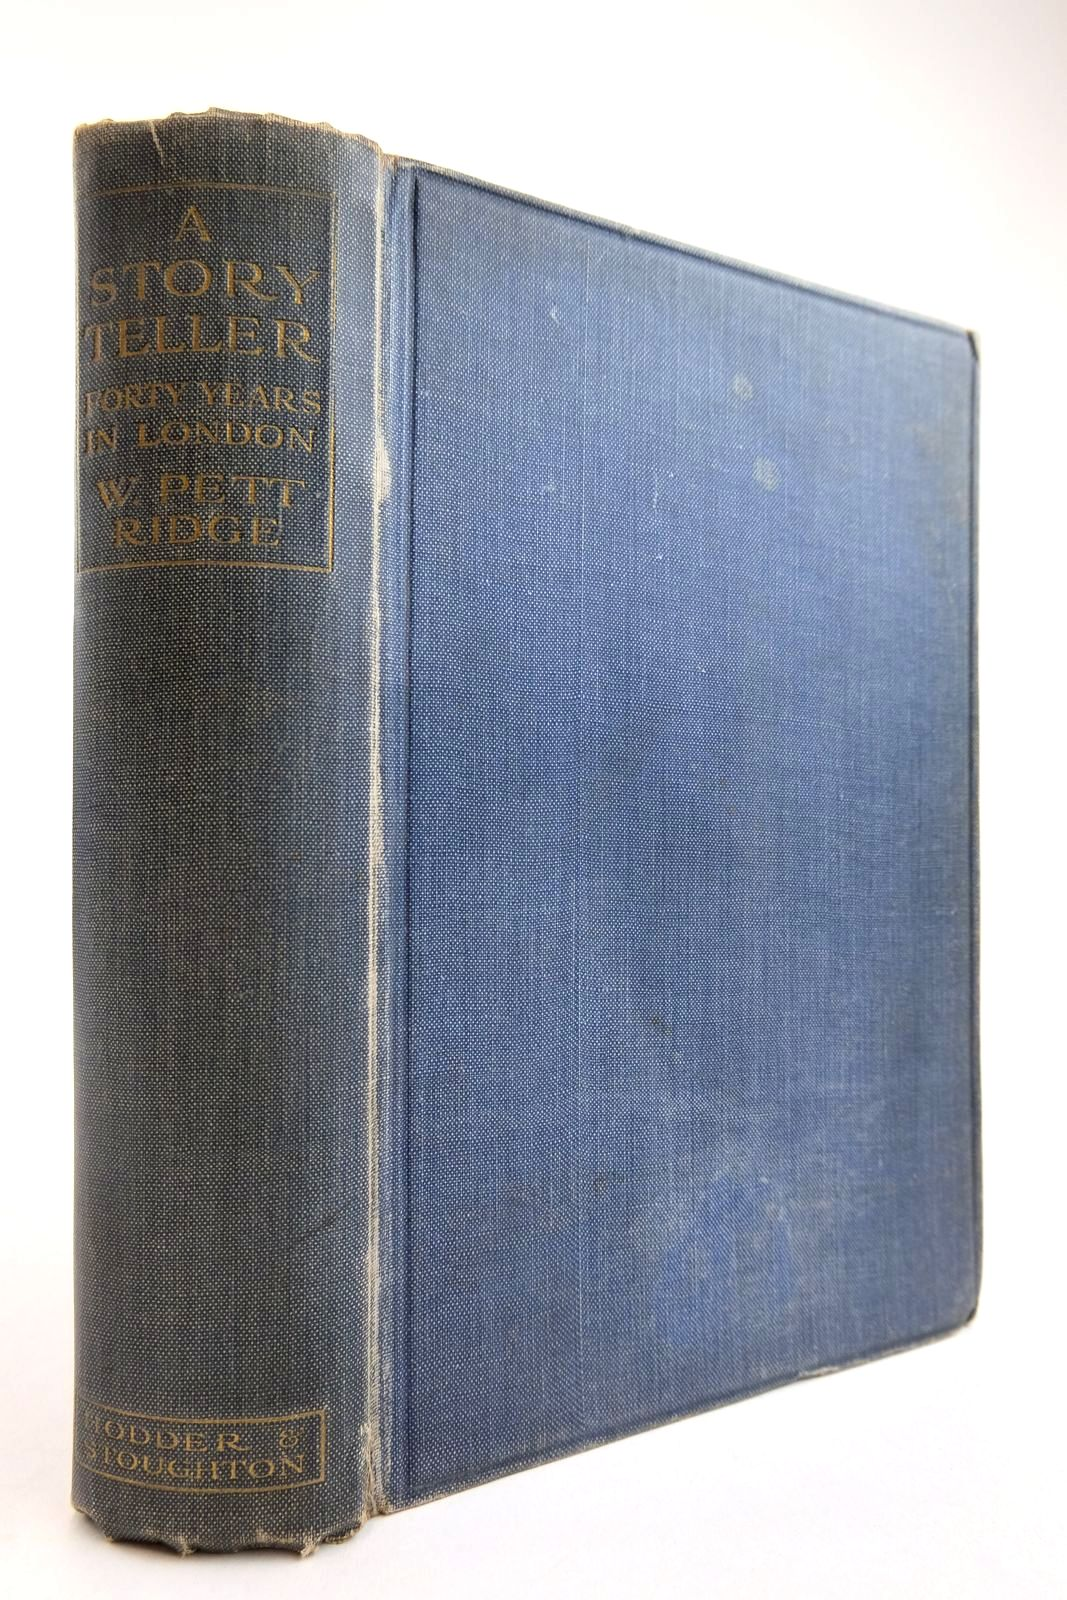 Photo of A STORY TELLER FORTY YEARS IN LONDON written by Ridge, W. Pett published by Hodder & Stoughton (STOCK CODE: 2134222)  for sale by Stella & Rose's Books